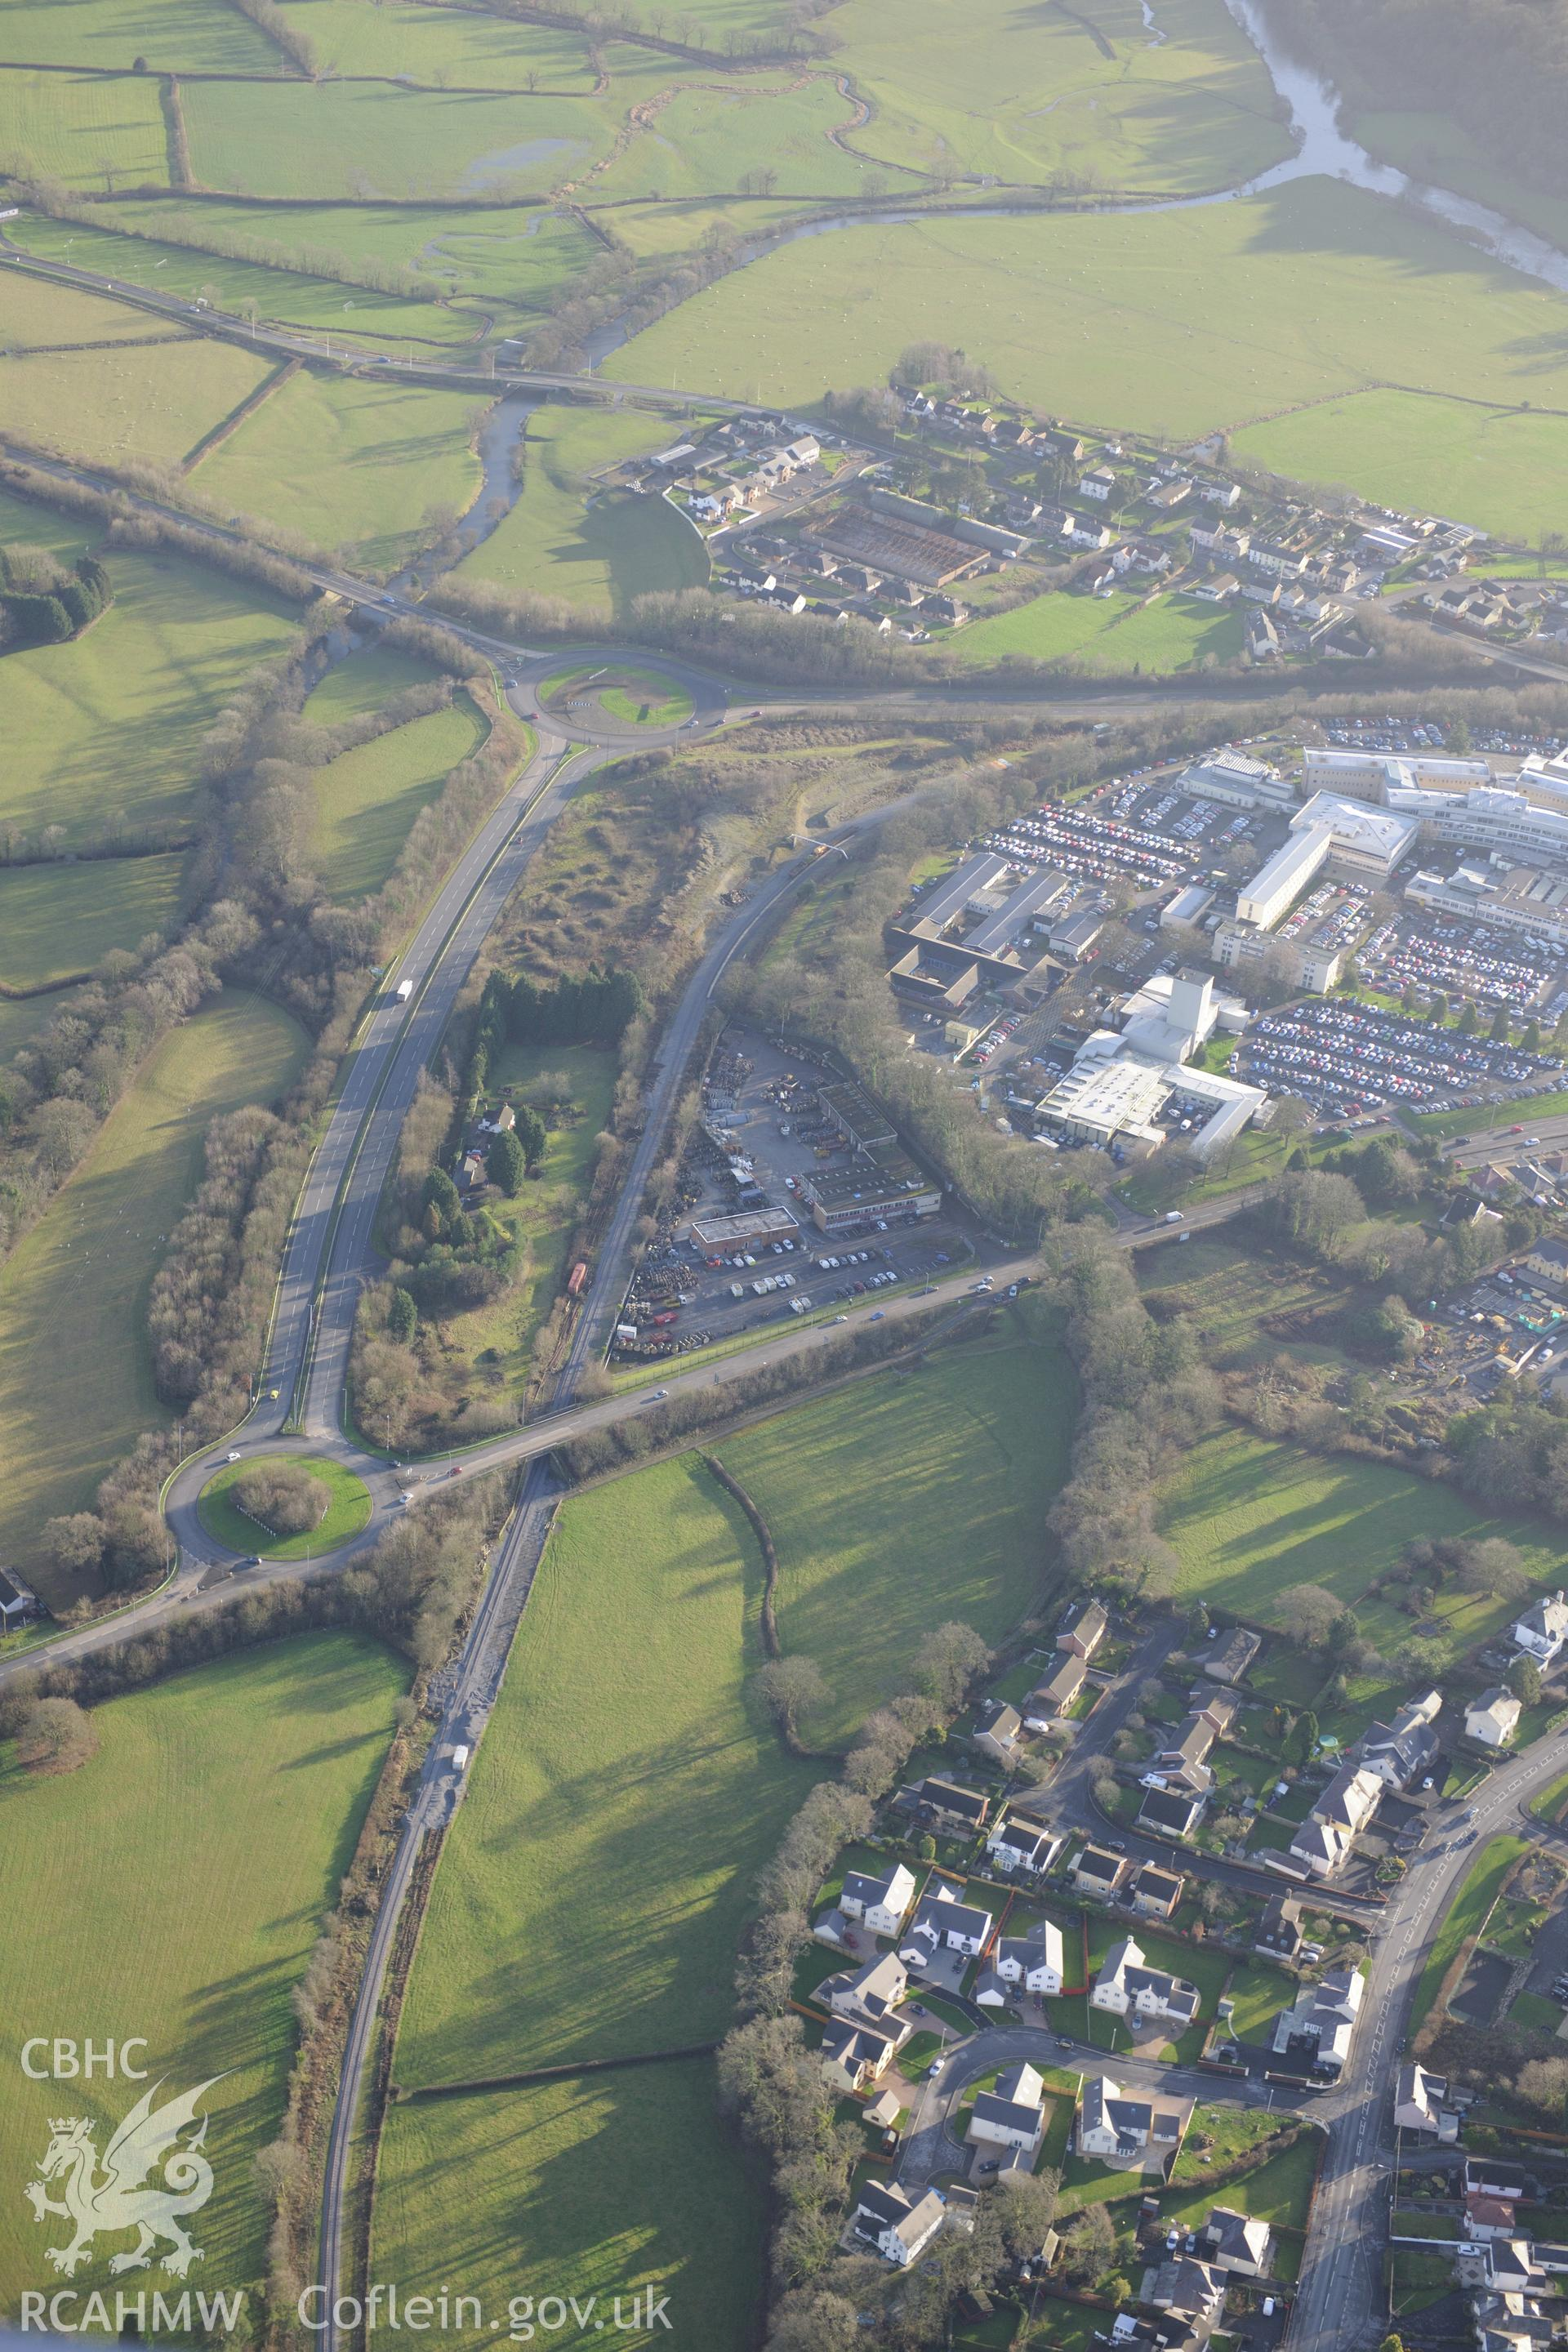 West Wales General Hospital, Carmarthen. Oblique aerial photograph taken during the Royal Commission's programme of archaeological aerial reconnaissance by Toby Driver on 6th January 2015.